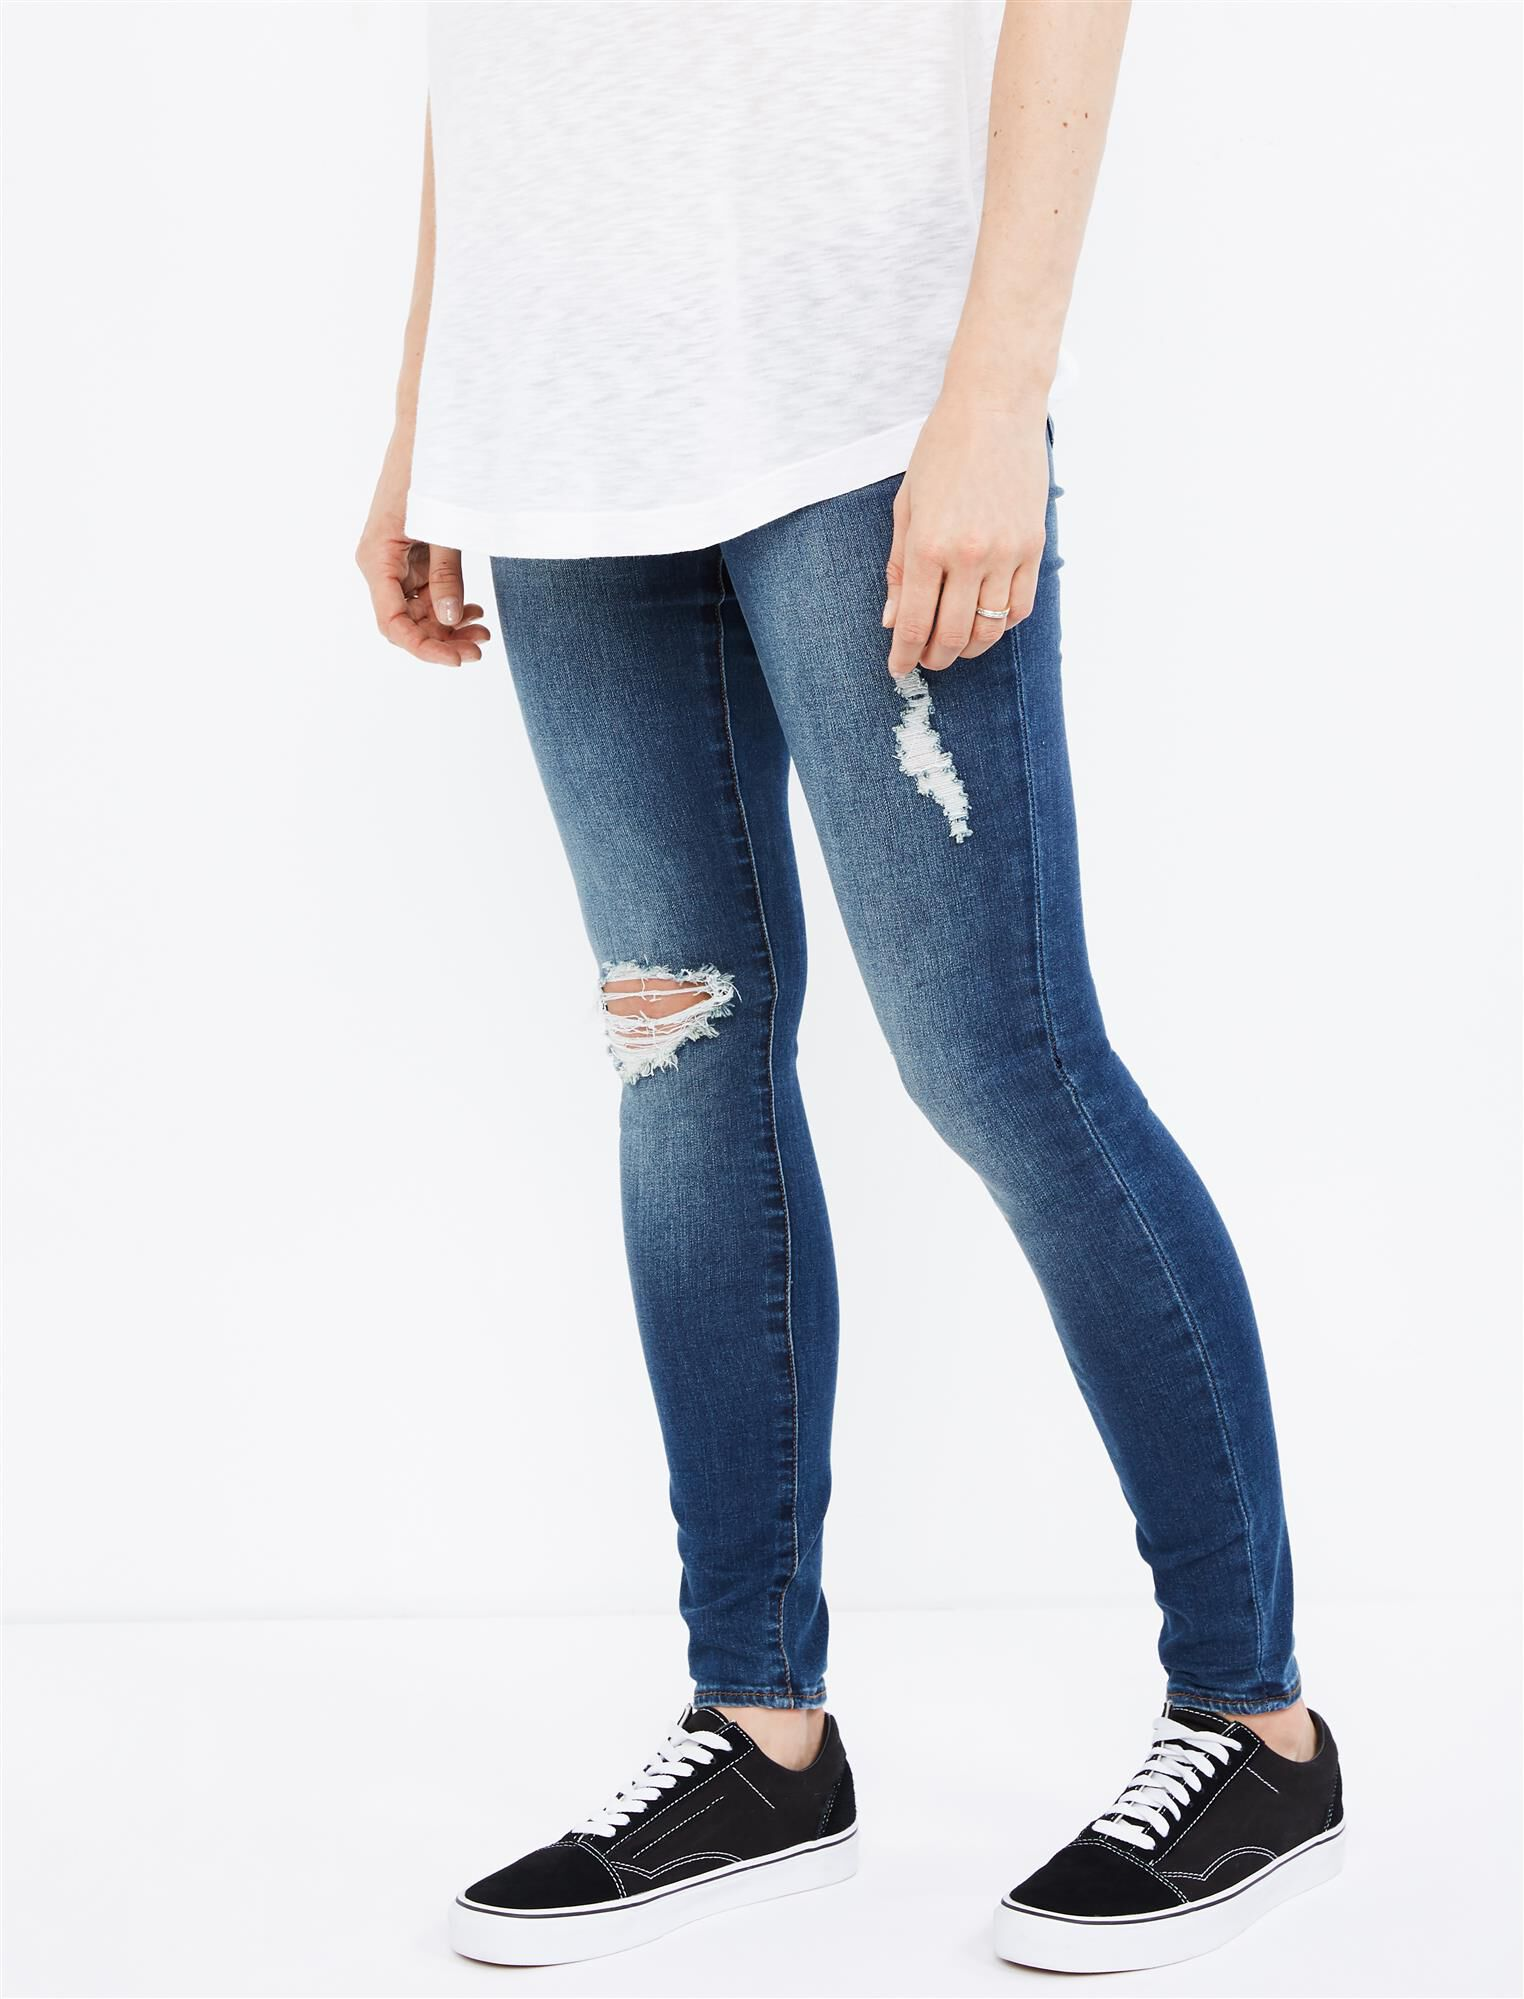 Articles Of Society Secret Fit Belly Sarah Maternity Jeans- Medium Wash